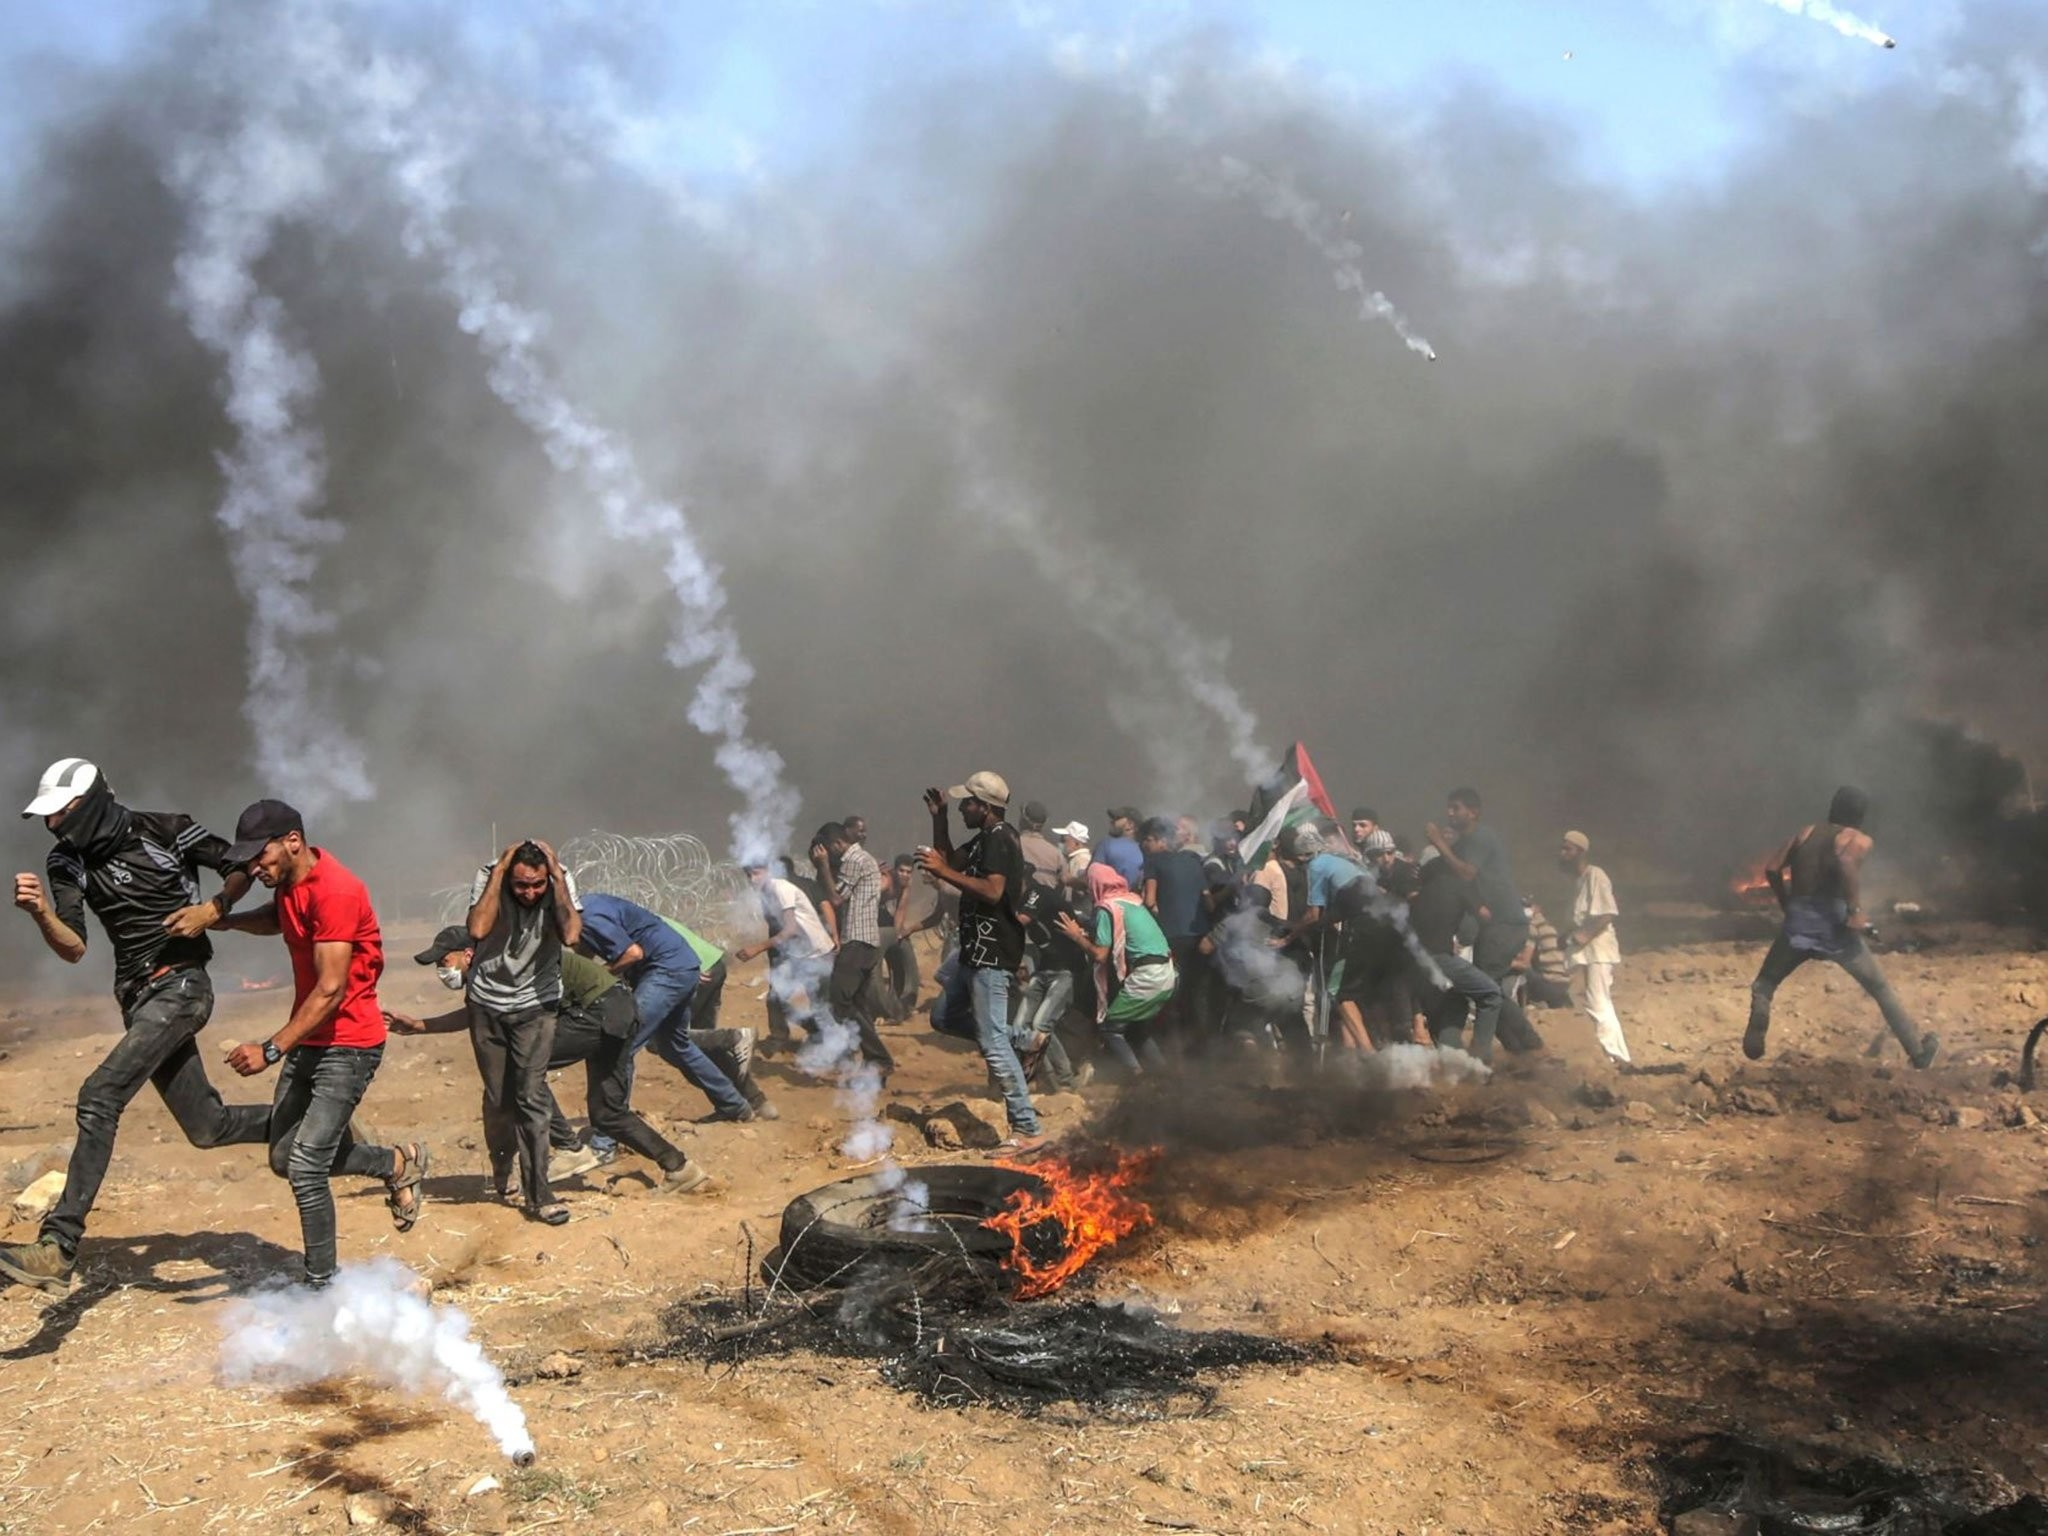 2048x1536 Israeli lethal force in Gaza may be war crime, says Human Rights Watch